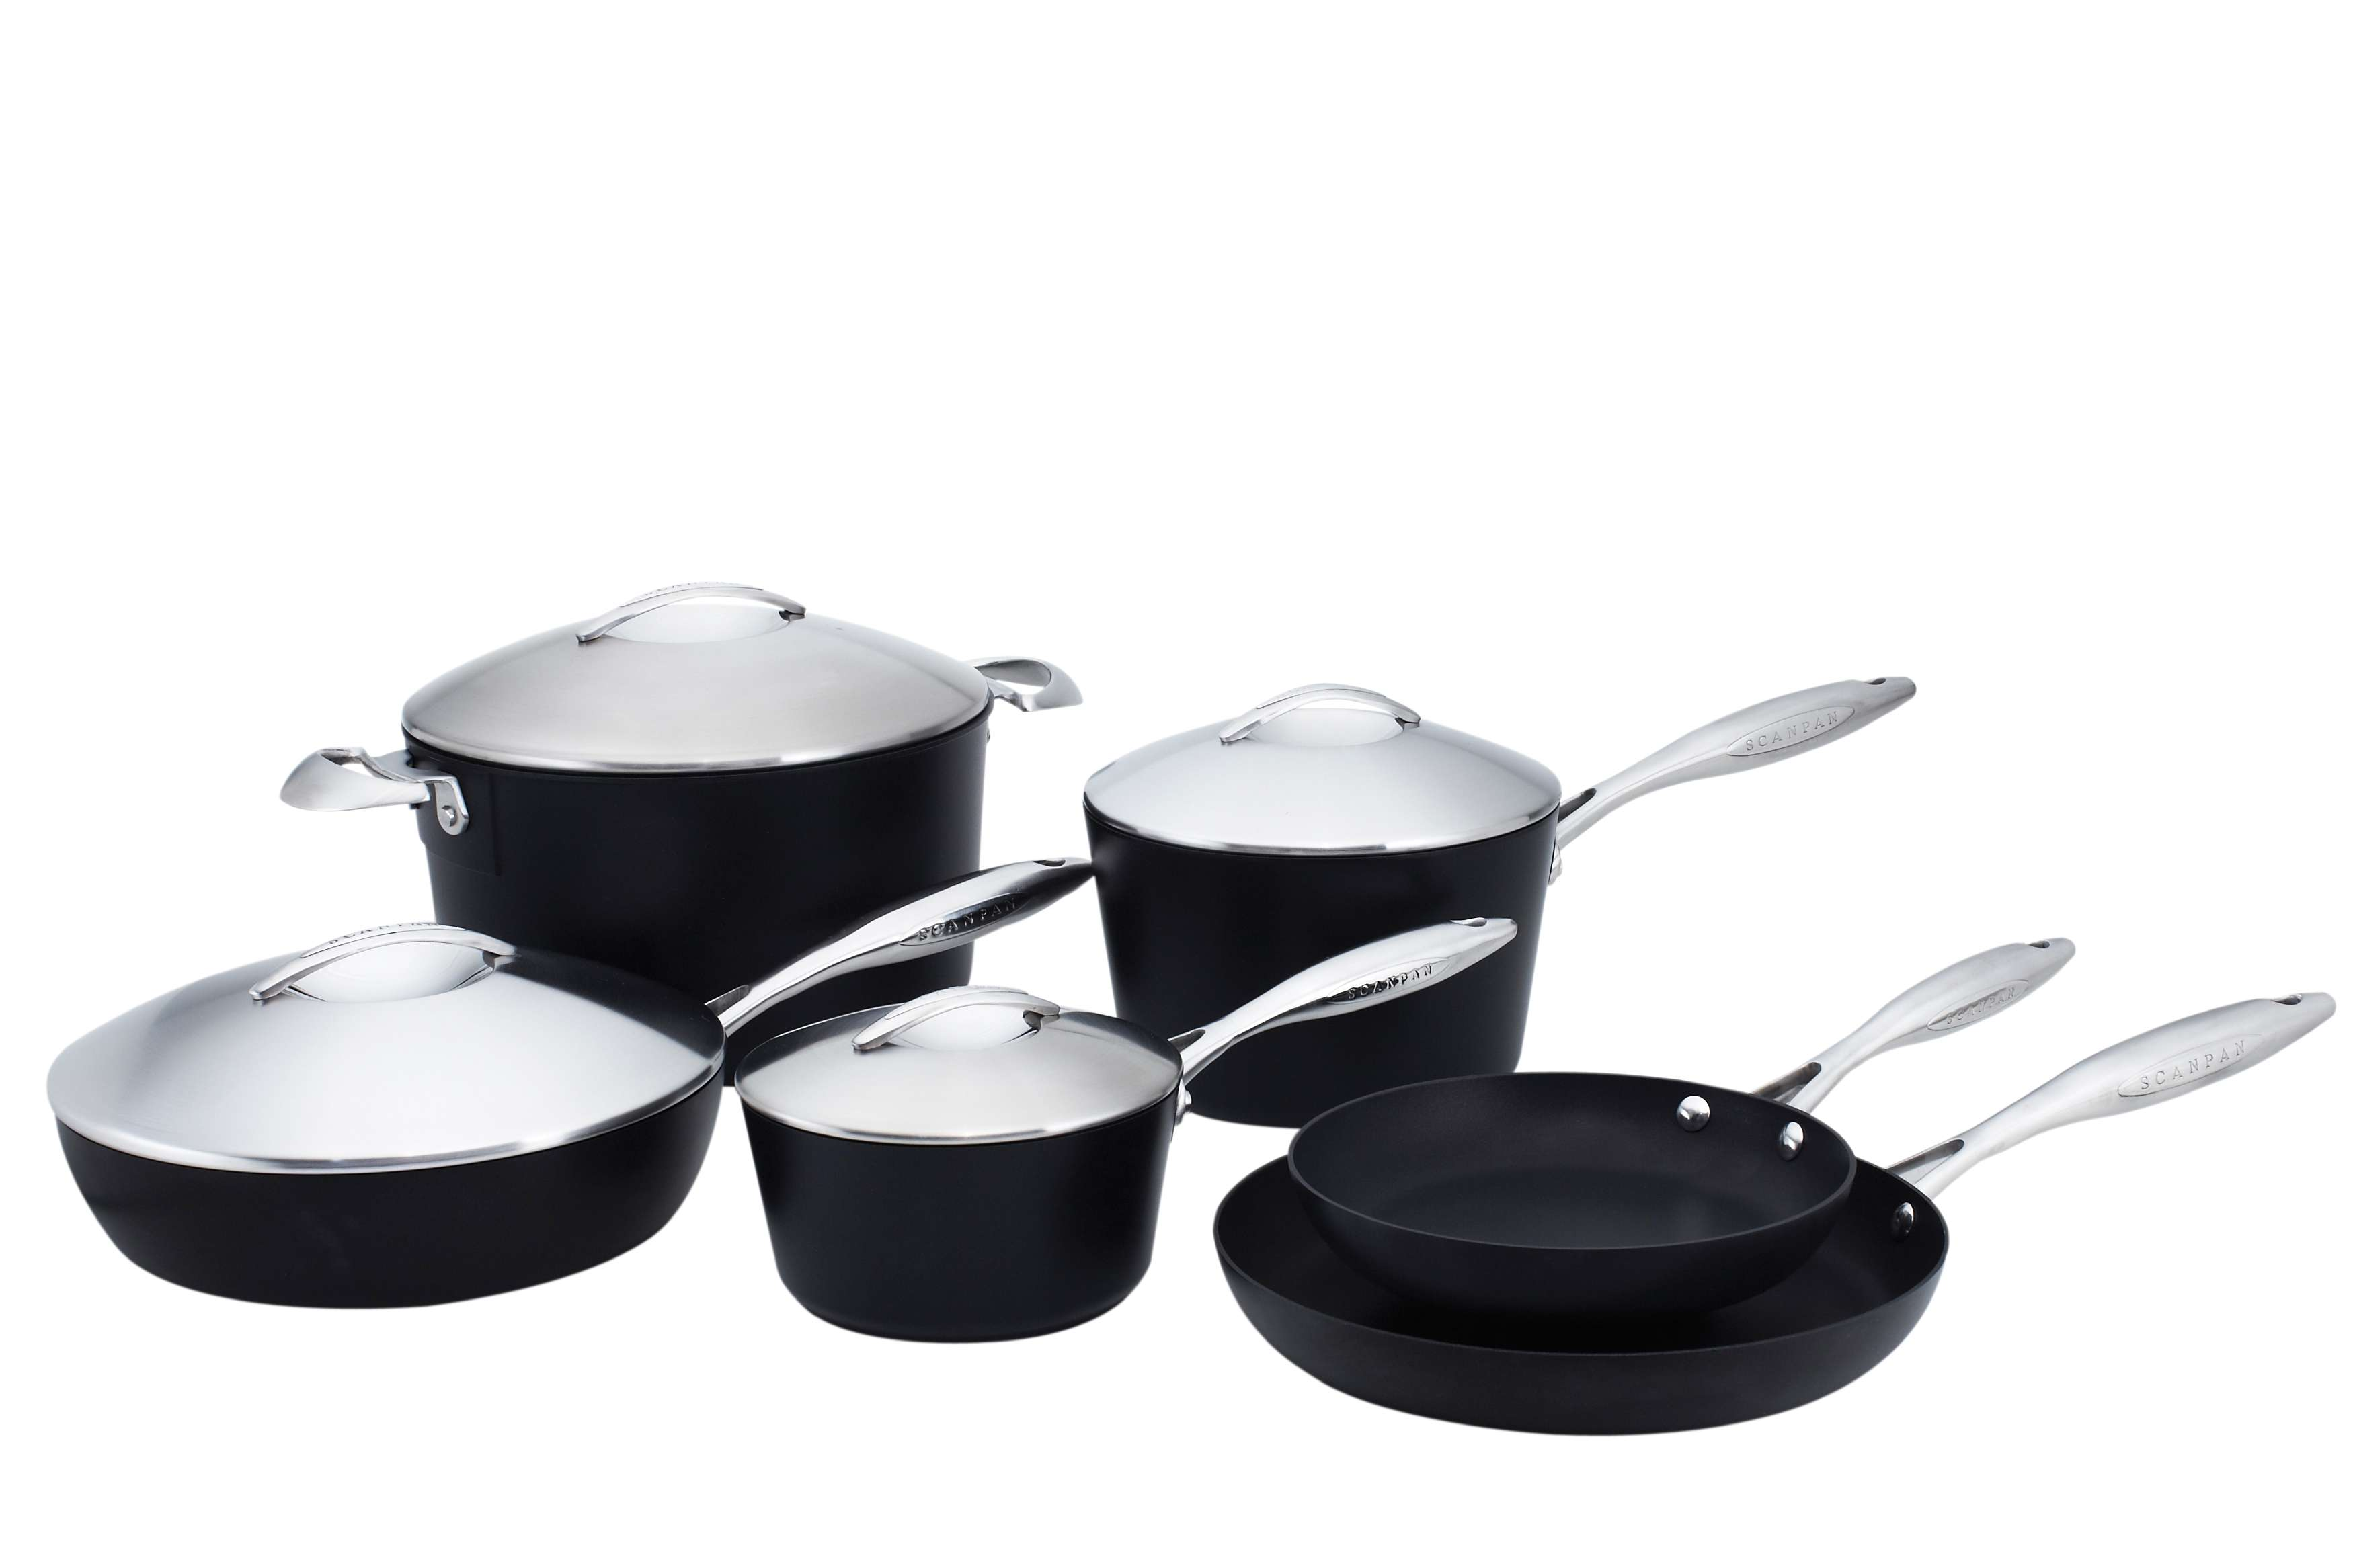 The 5 Best Eco-Friendly Cookware Brands of 2019